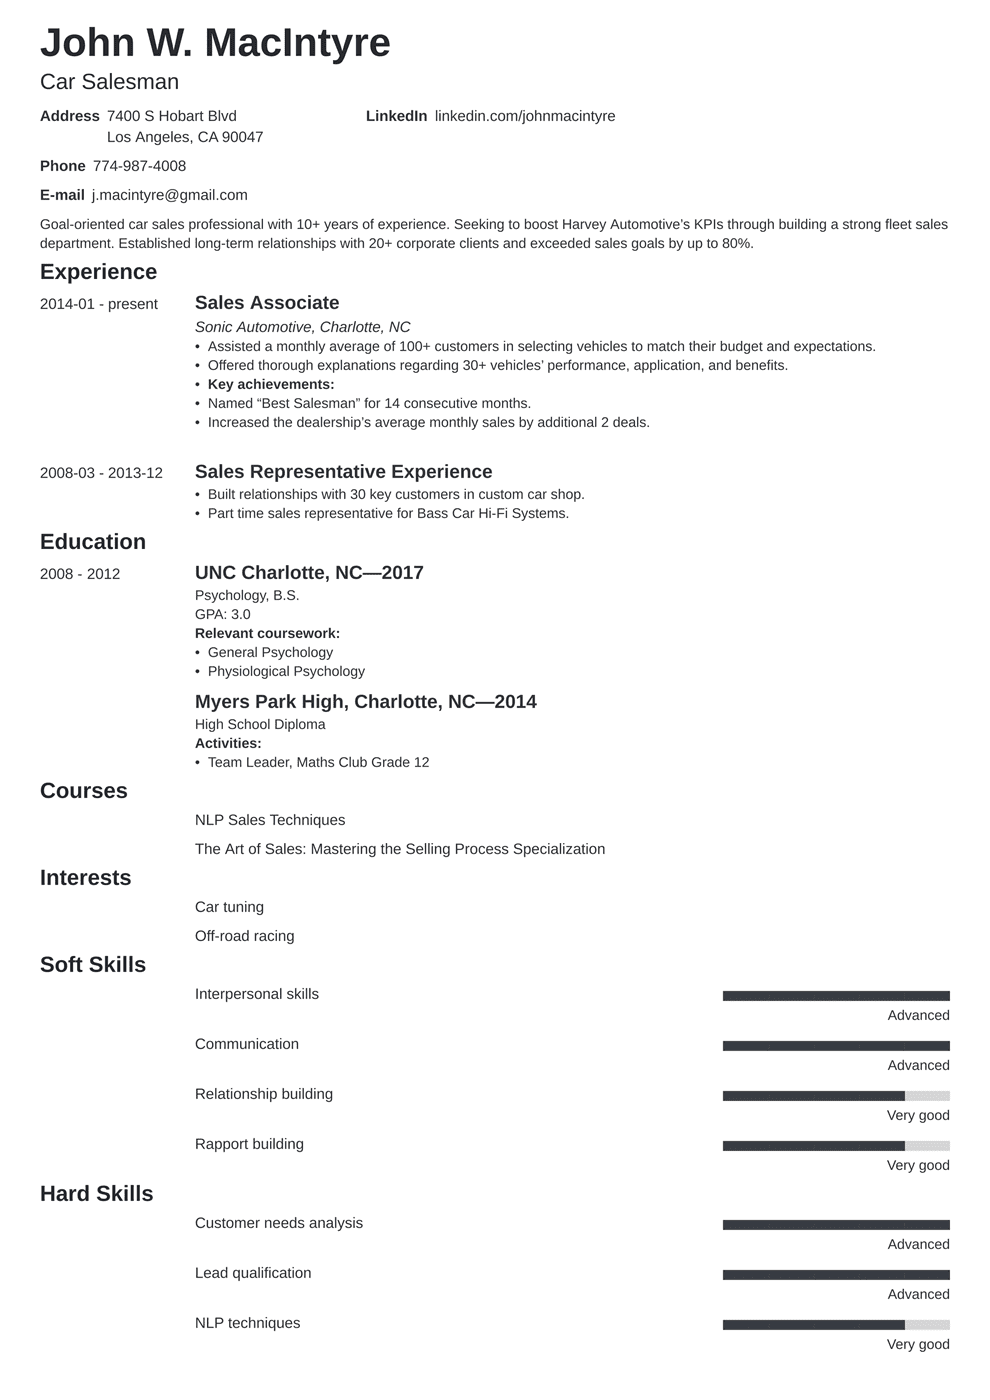 Car Salesman Resume Example & Guide [20+ Tips]